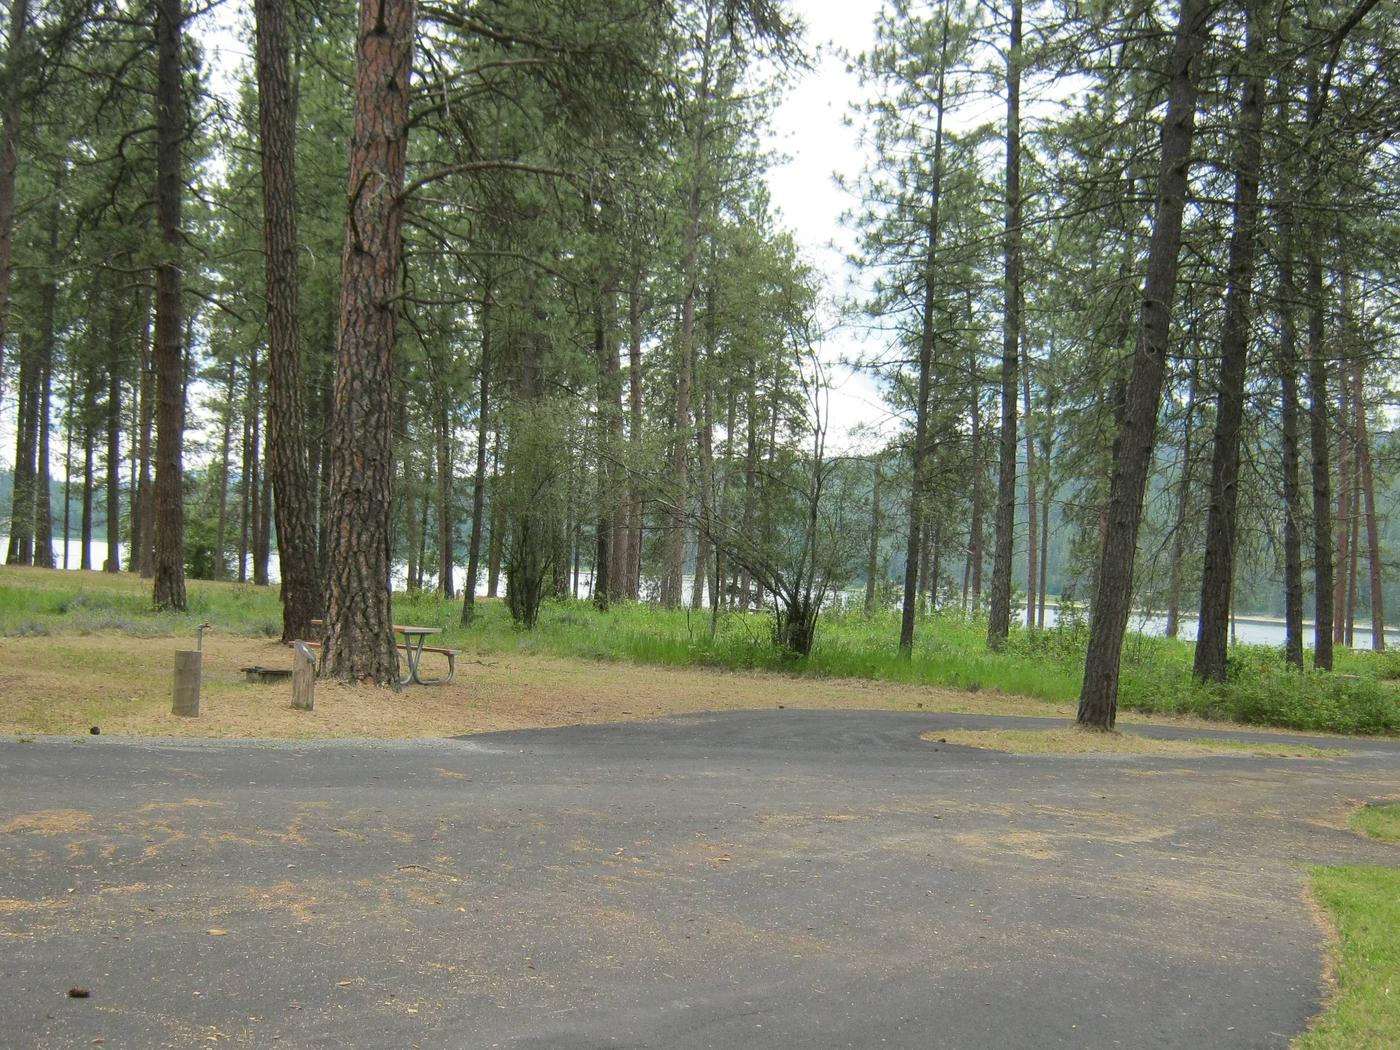 Pine forest back dropPull through paved parking